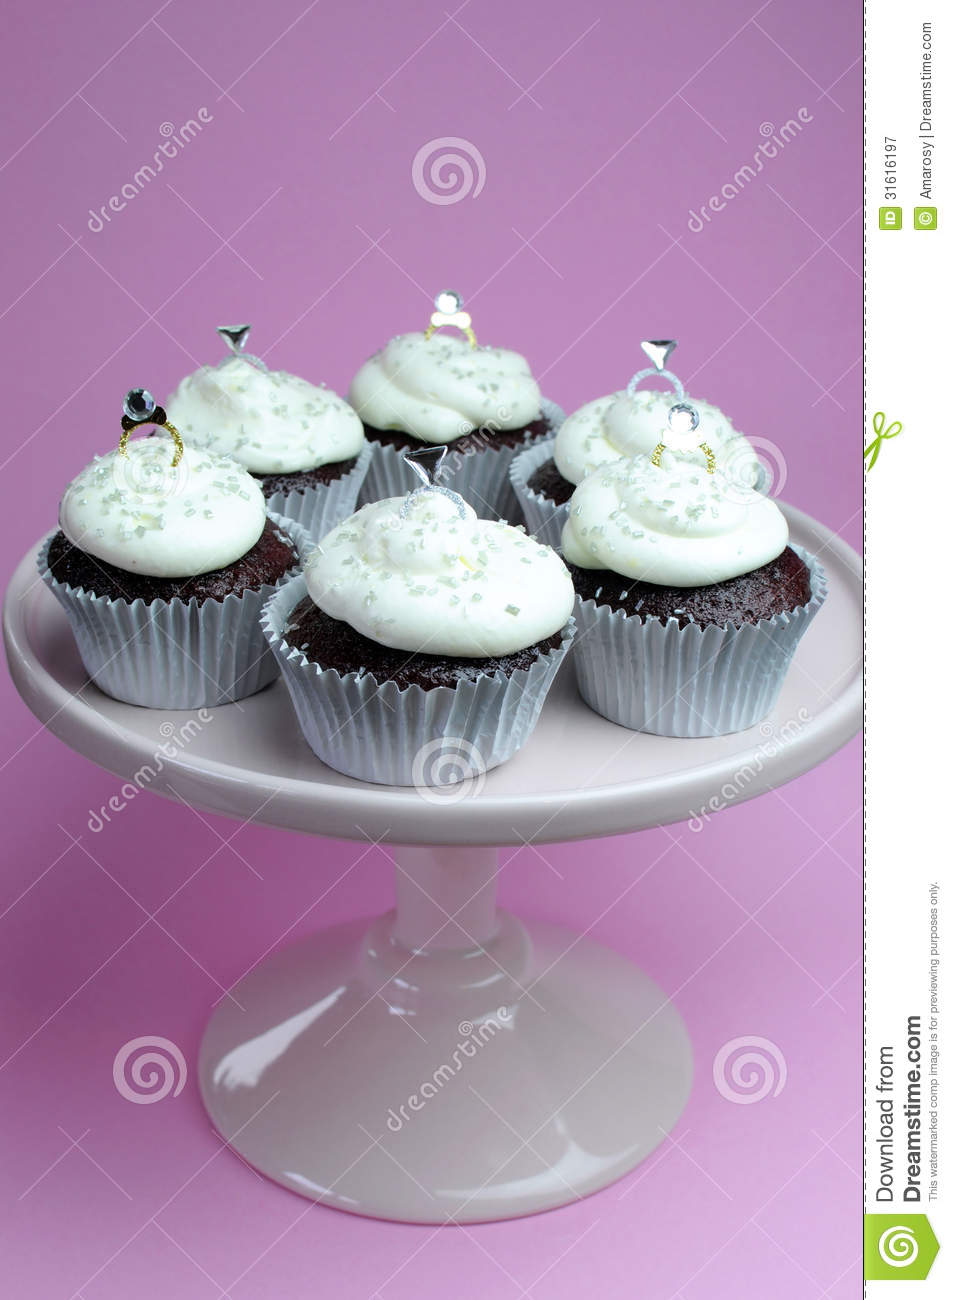 Wedding Ring Cupcakes Stock Image Image Of Just Diamond